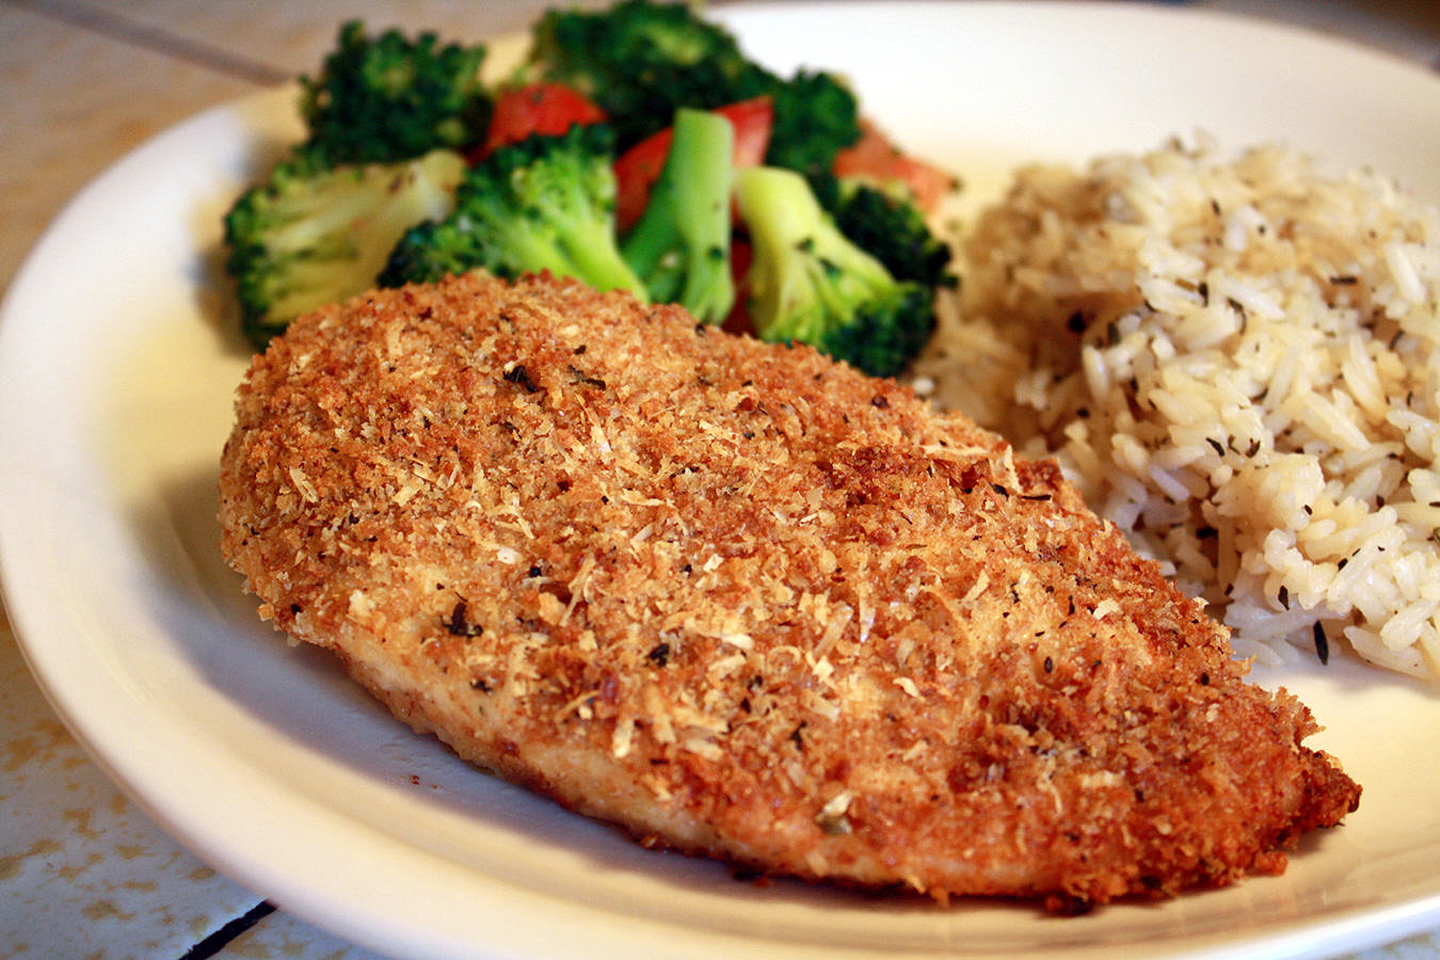 a breaded baked chicken breast on a dinner plate with rice pilaf and broccoli in the background